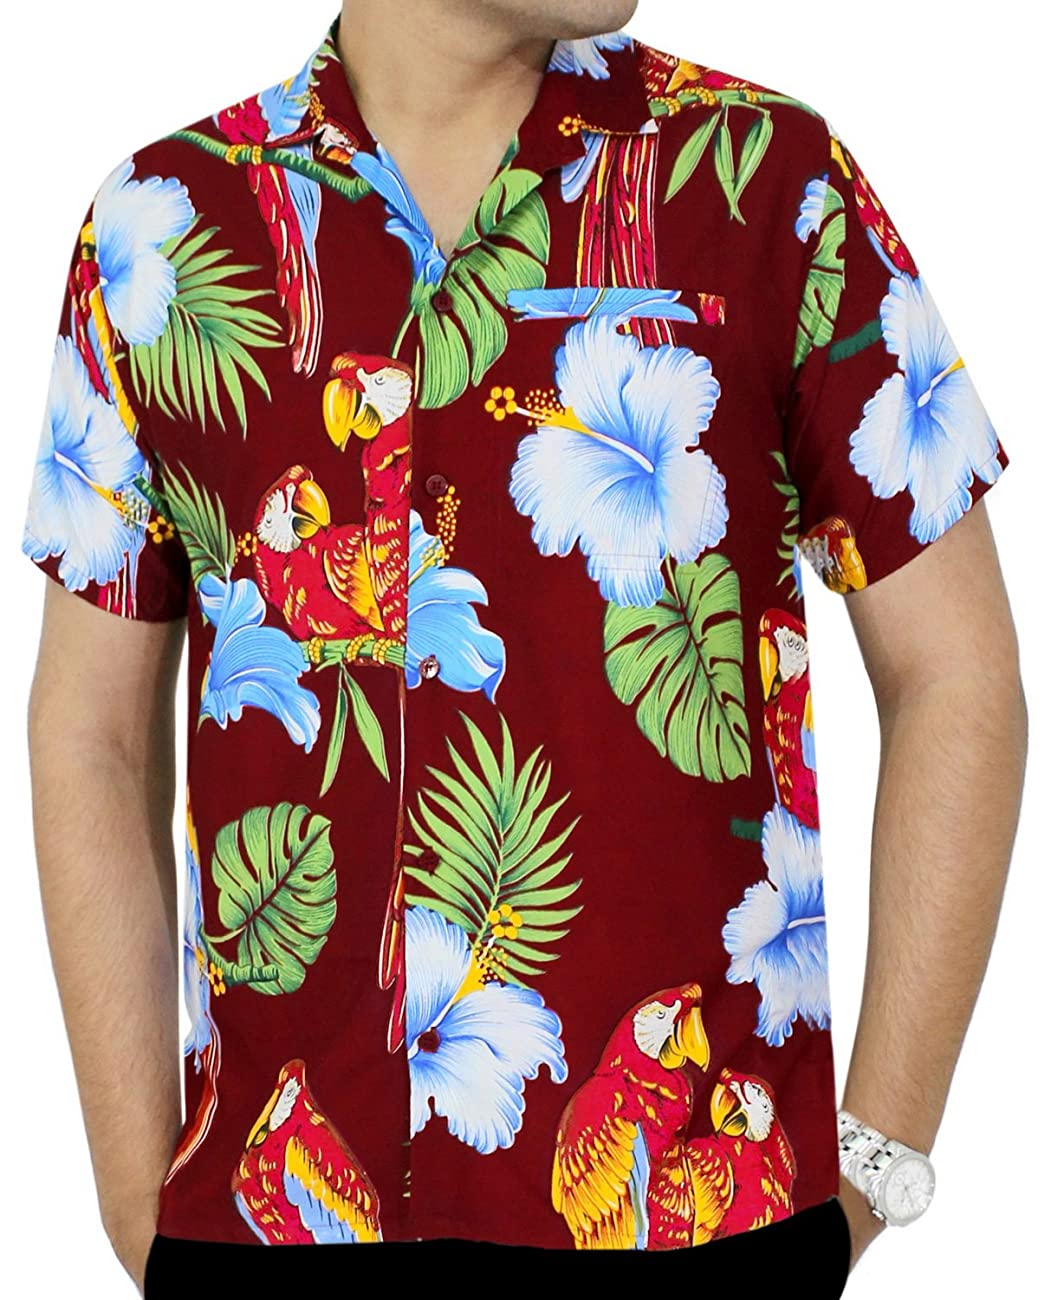 La Leela Hawaiian Shirt For Men Short Sleeve Front-Pocket Printed In Many Colors 0